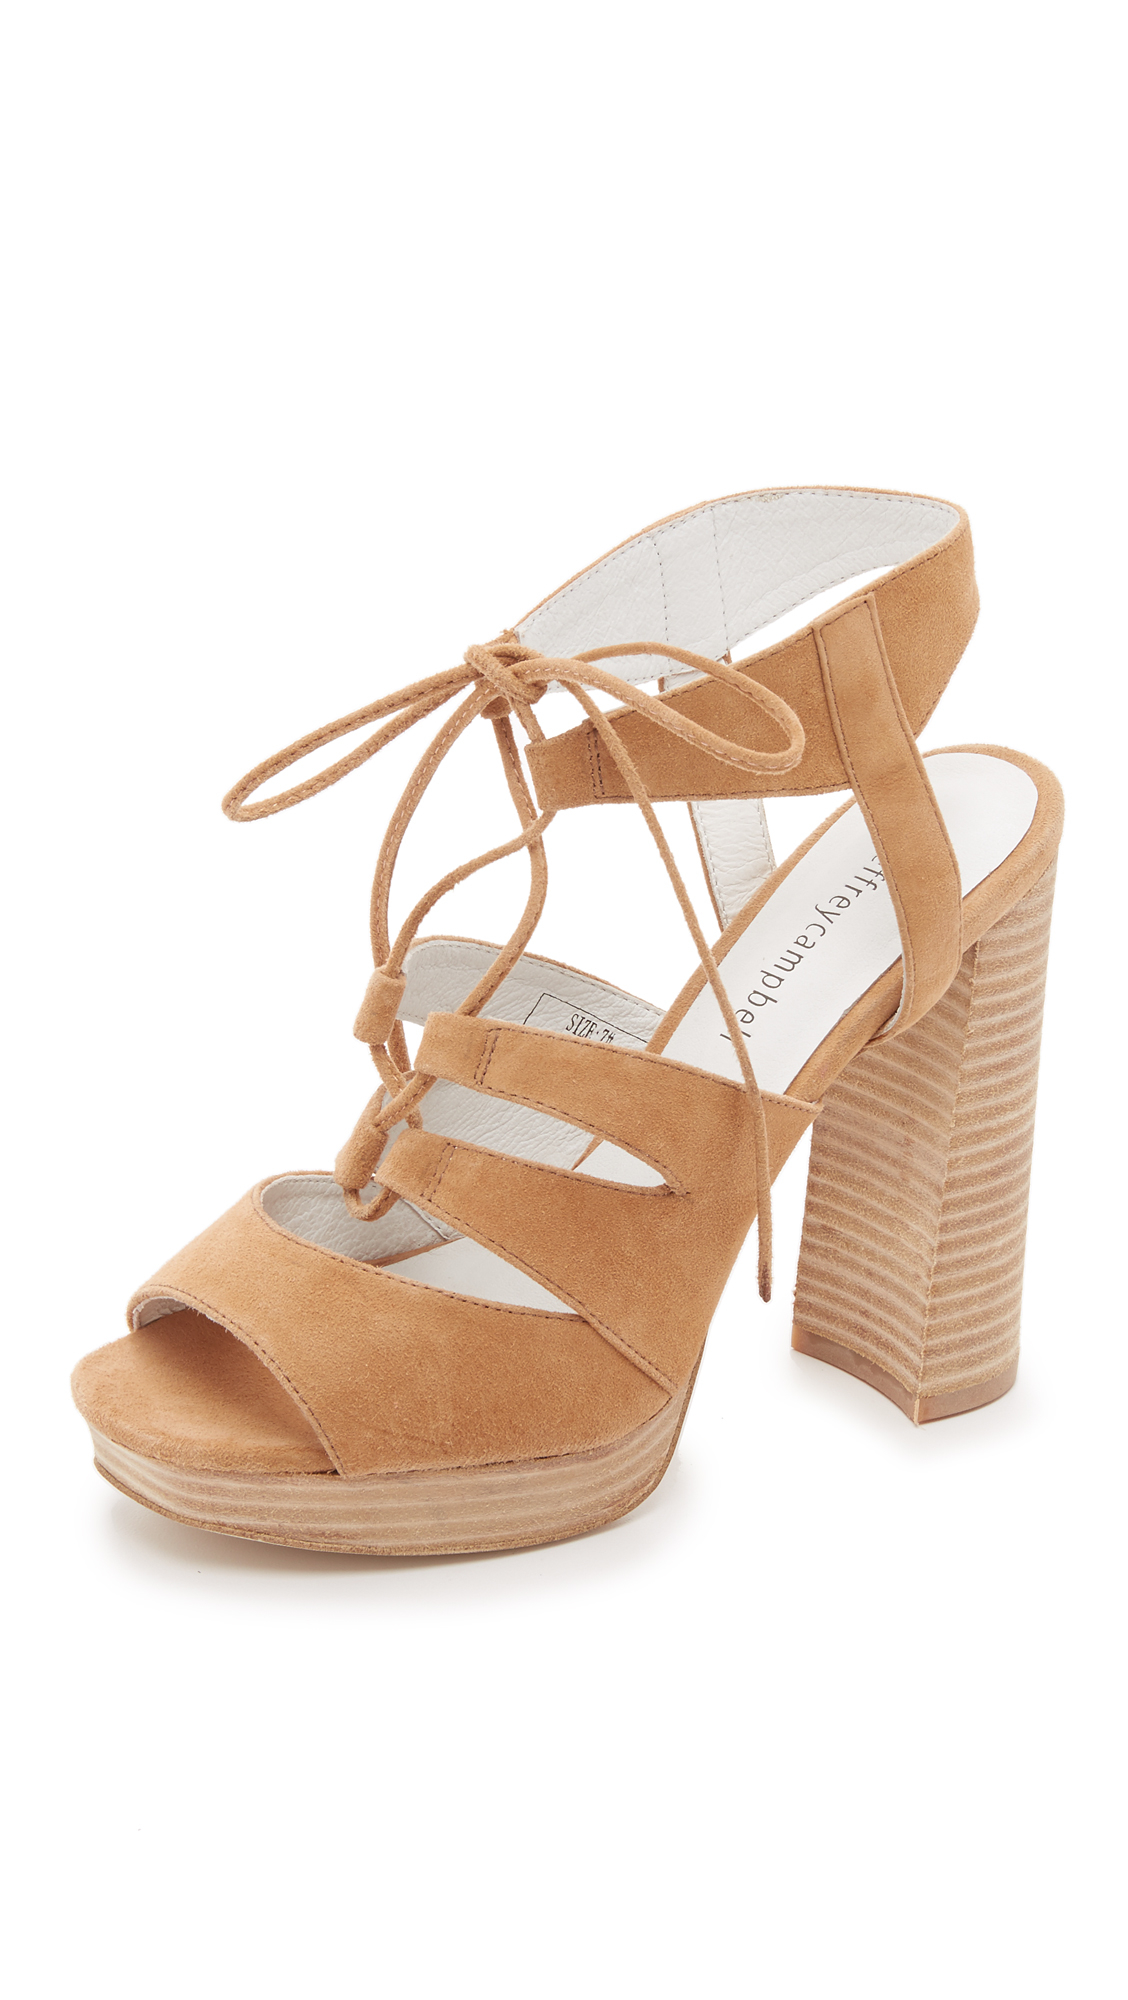 Ibex Suede, Womens Open-Toe Heeled Shoes Jeffrey Campbell